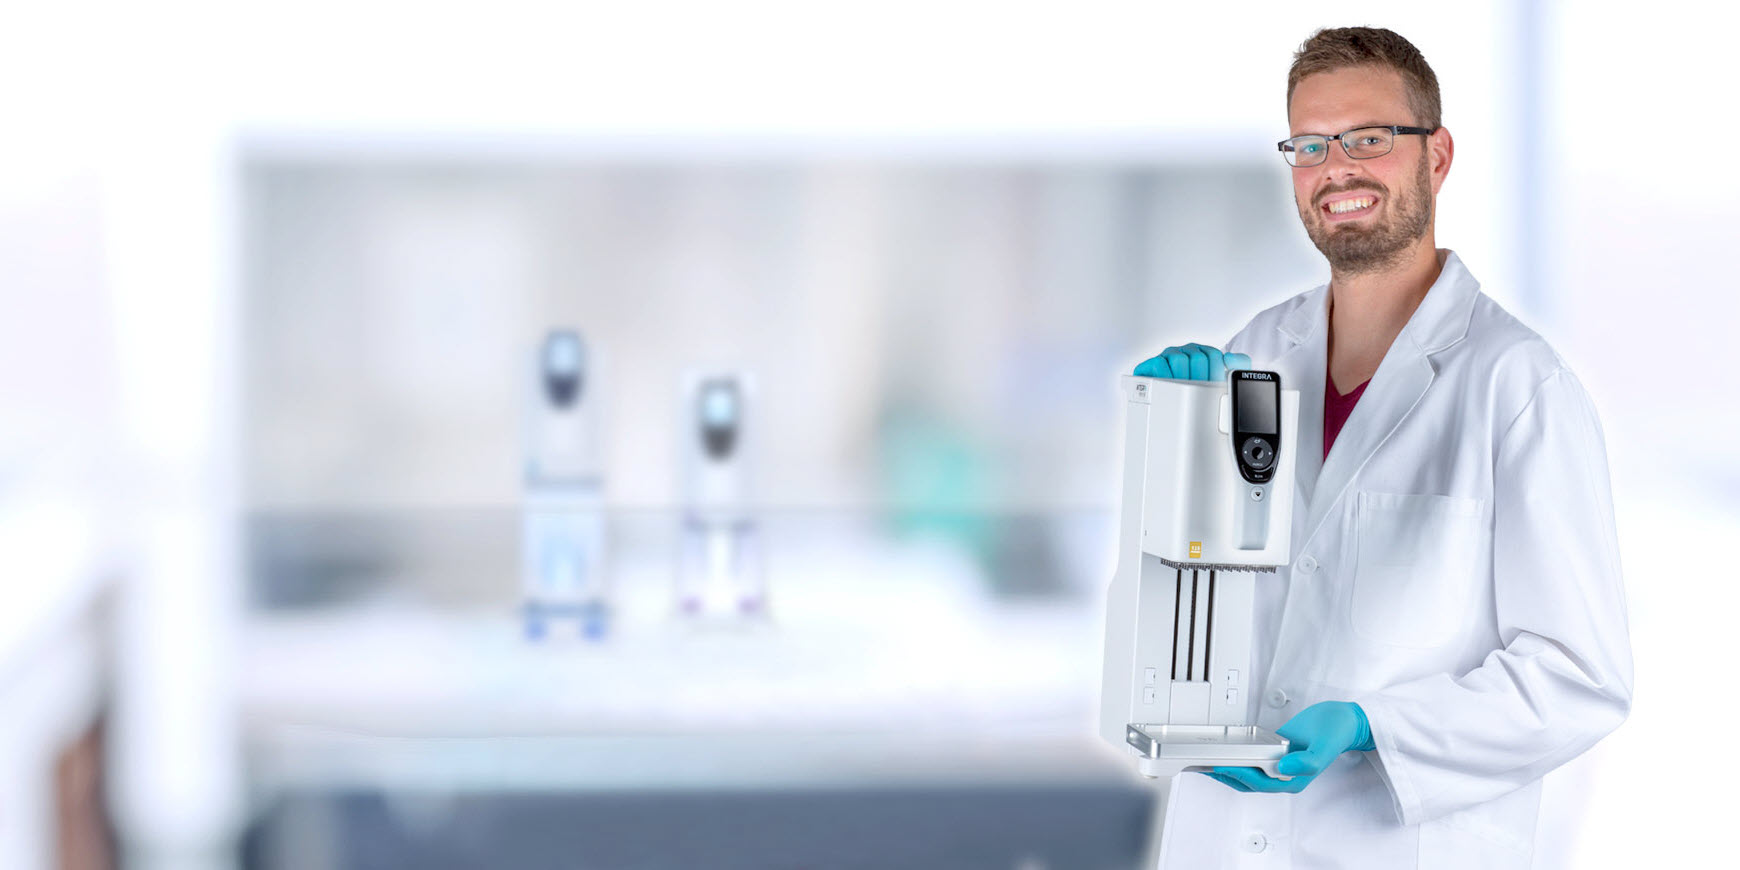 INTEGRA Introduces Its Portable 96-Channel Pipette at the Most Affordable Price